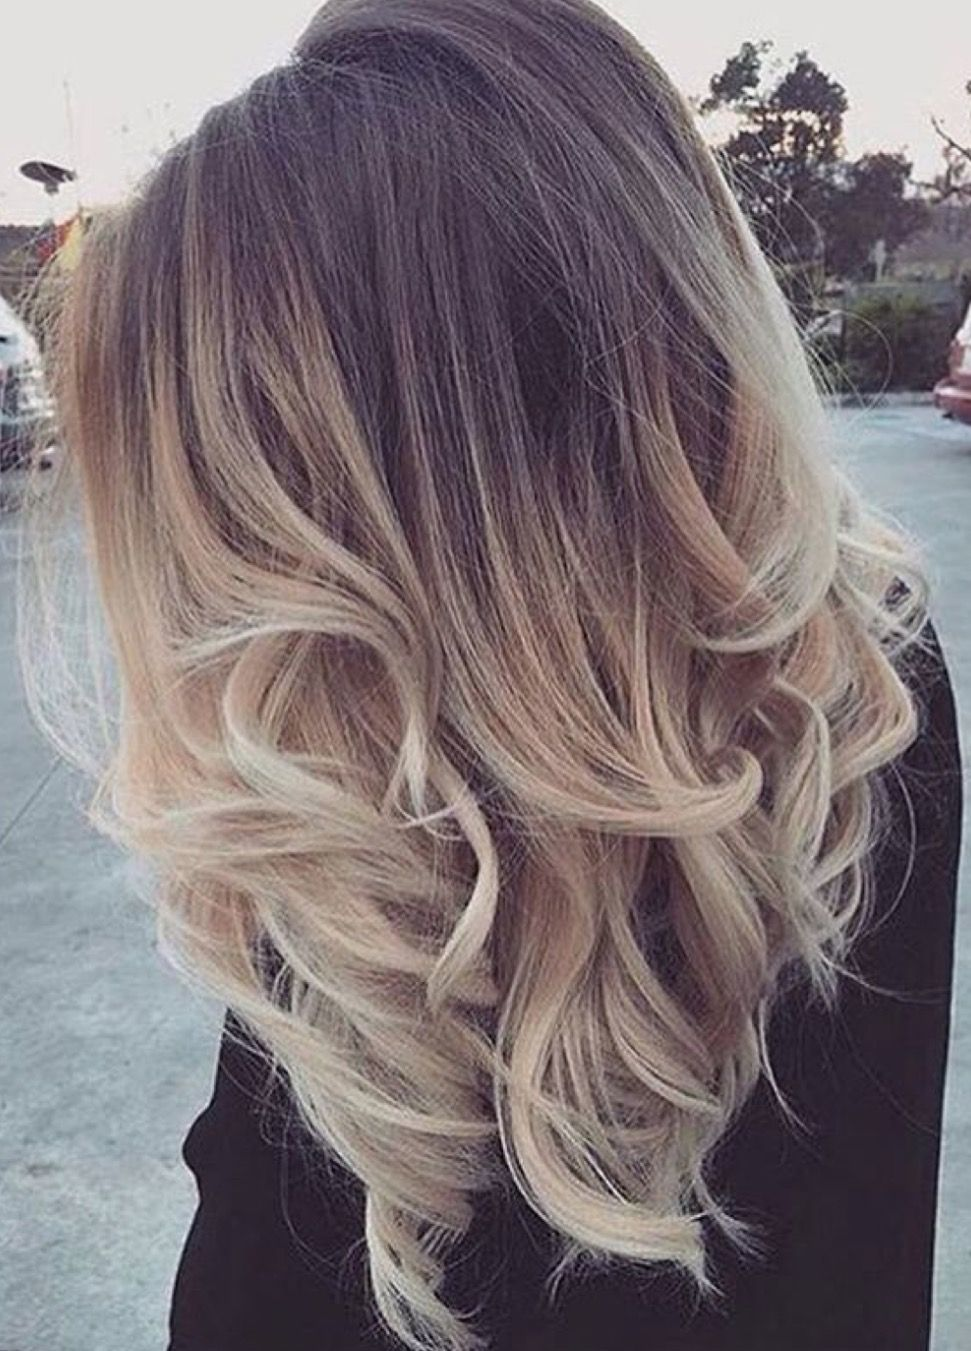 Loving This Ashy Balayage With A Deep Root Fading To An Icy Neutral Blonde Ombre Hair Blonde Hair Styles Brown Blonde Hair